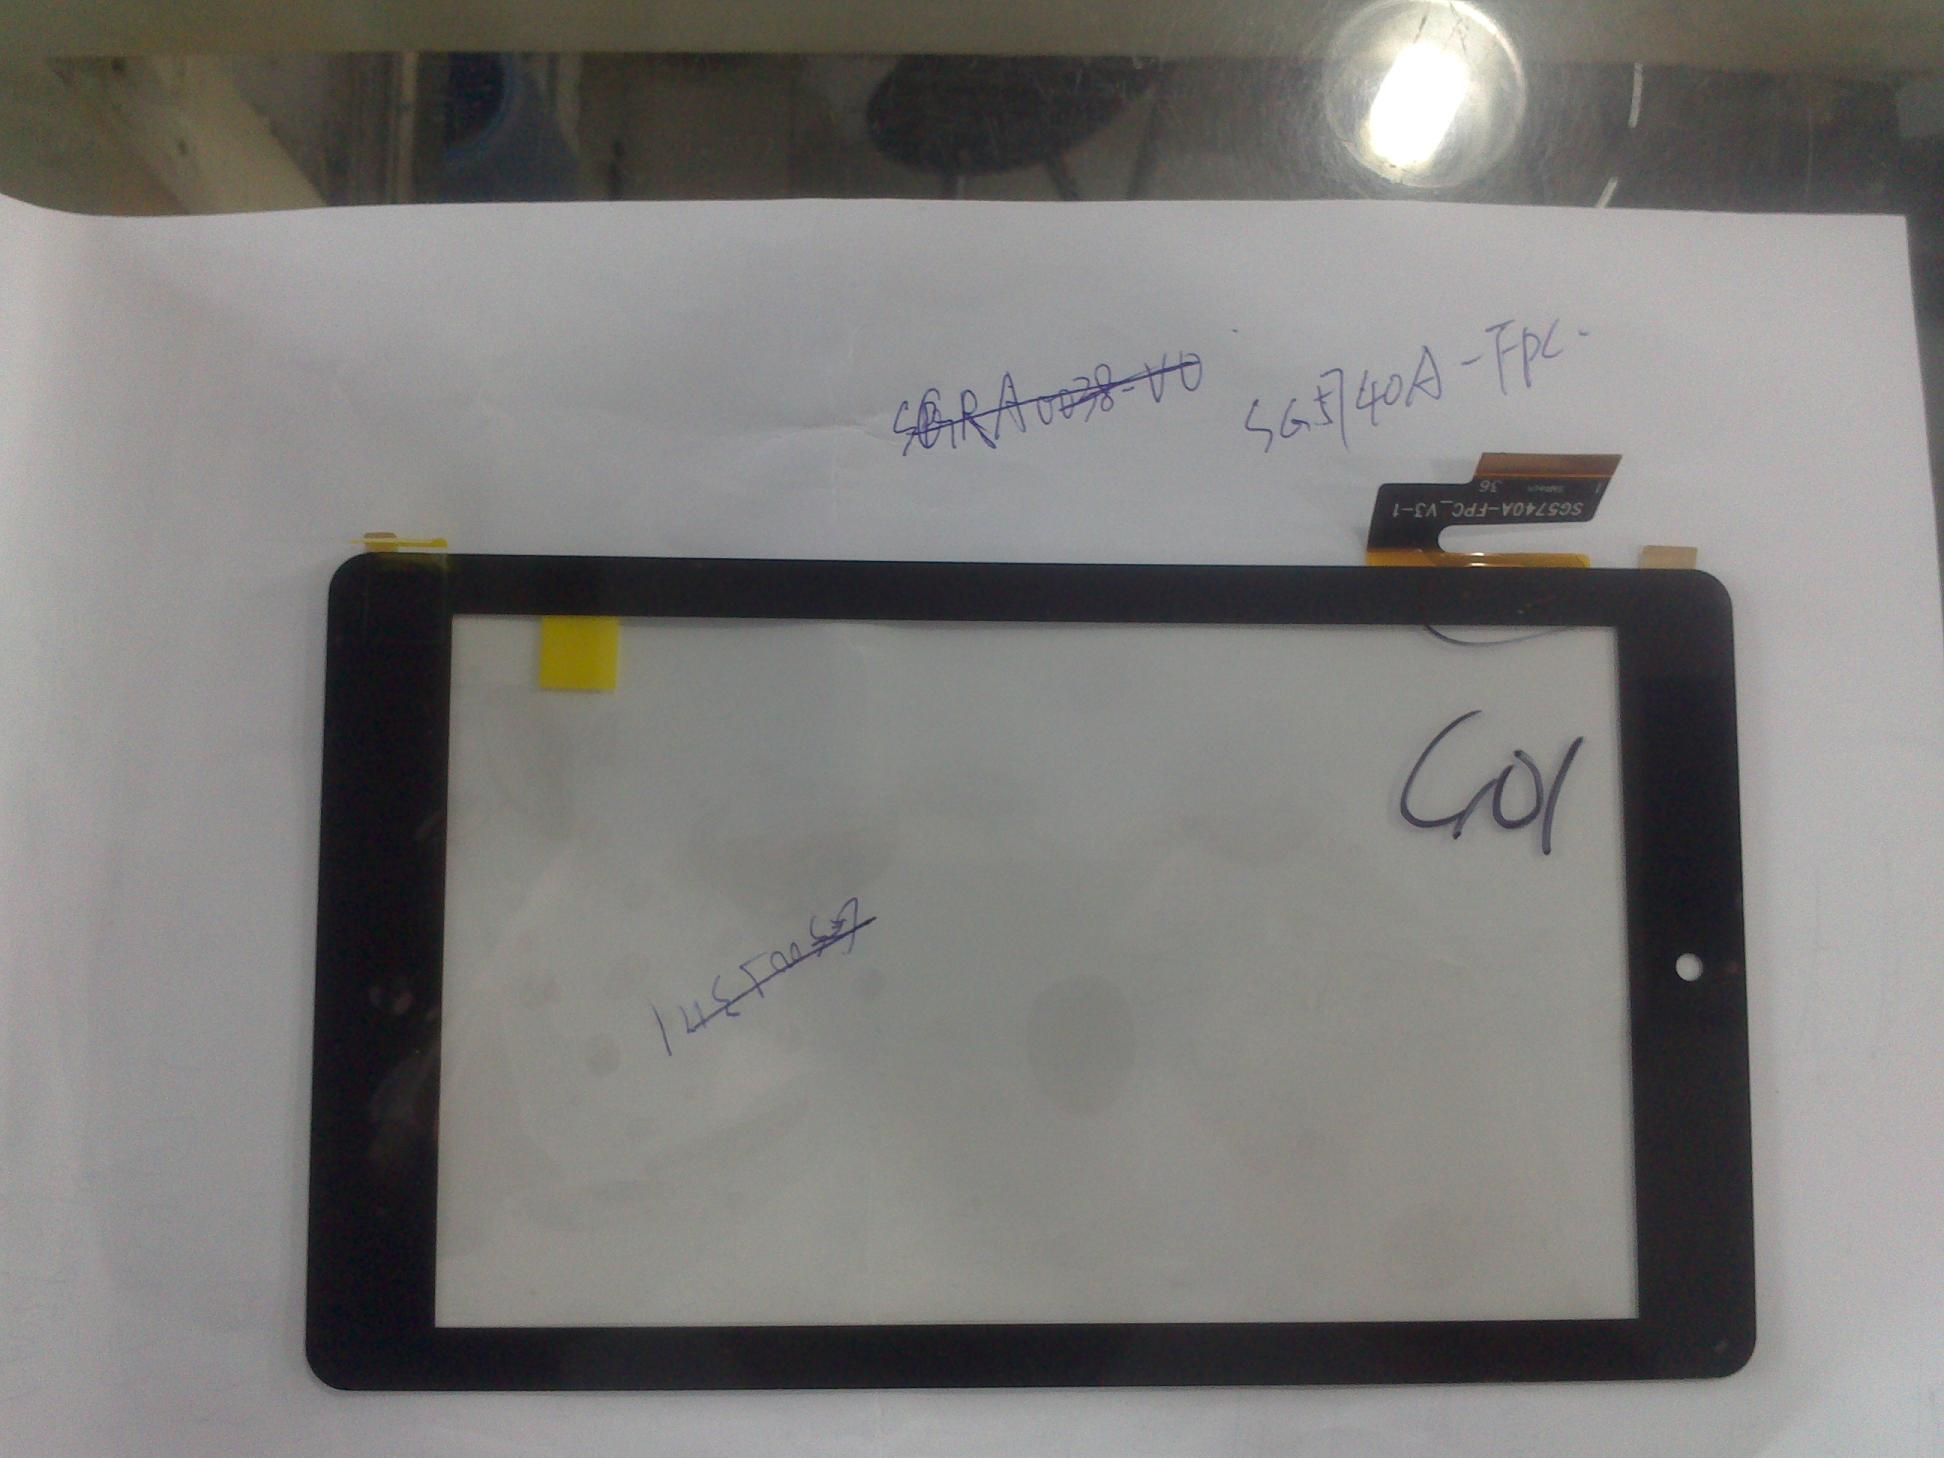 Запчасти для мобильных телефонов 7 inch new handwriting Tablet capacitive touch screen screen screen number is sg5740a/fpc_v3/1 SG5740A-FPC_V3-1